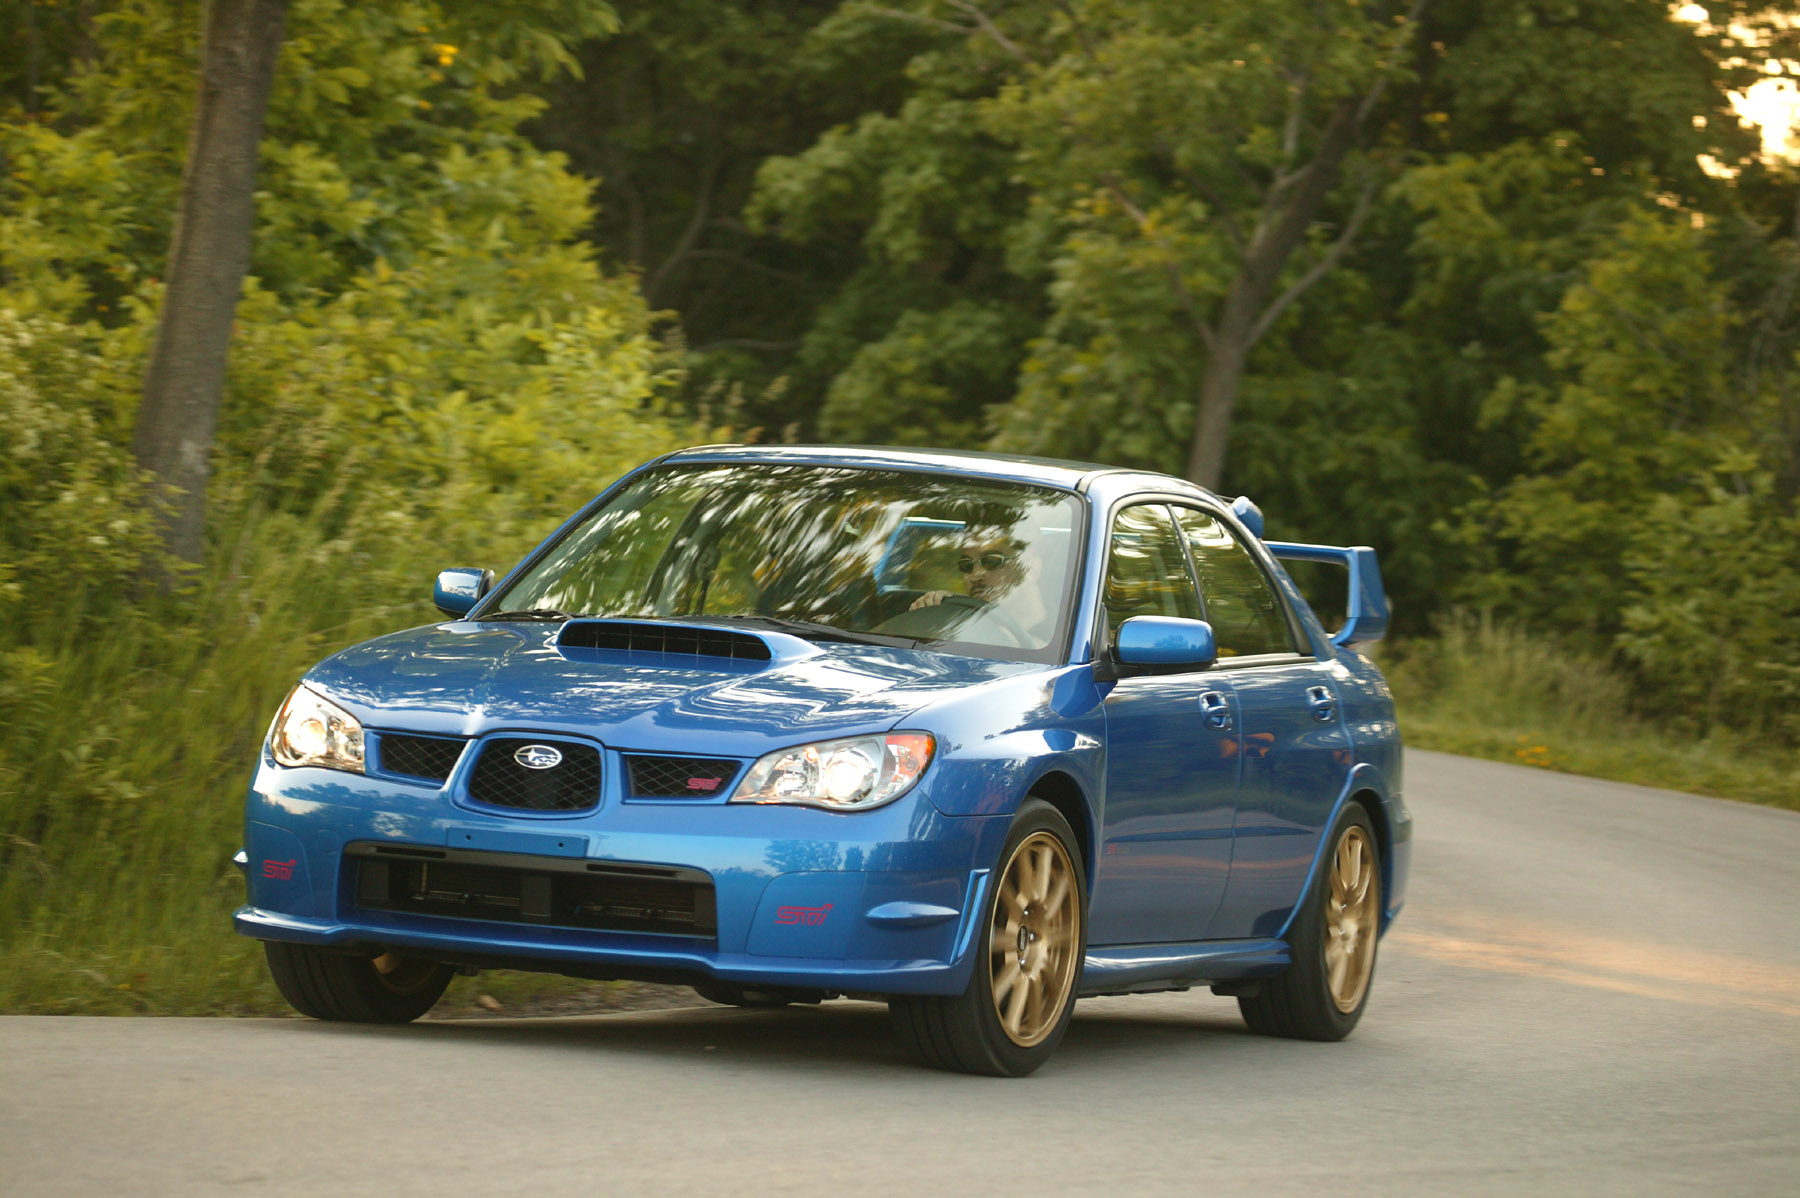 2006 subaru impreza wrx sti review top speed. Black Bedroom Furniture Sets. Home Design Ideas